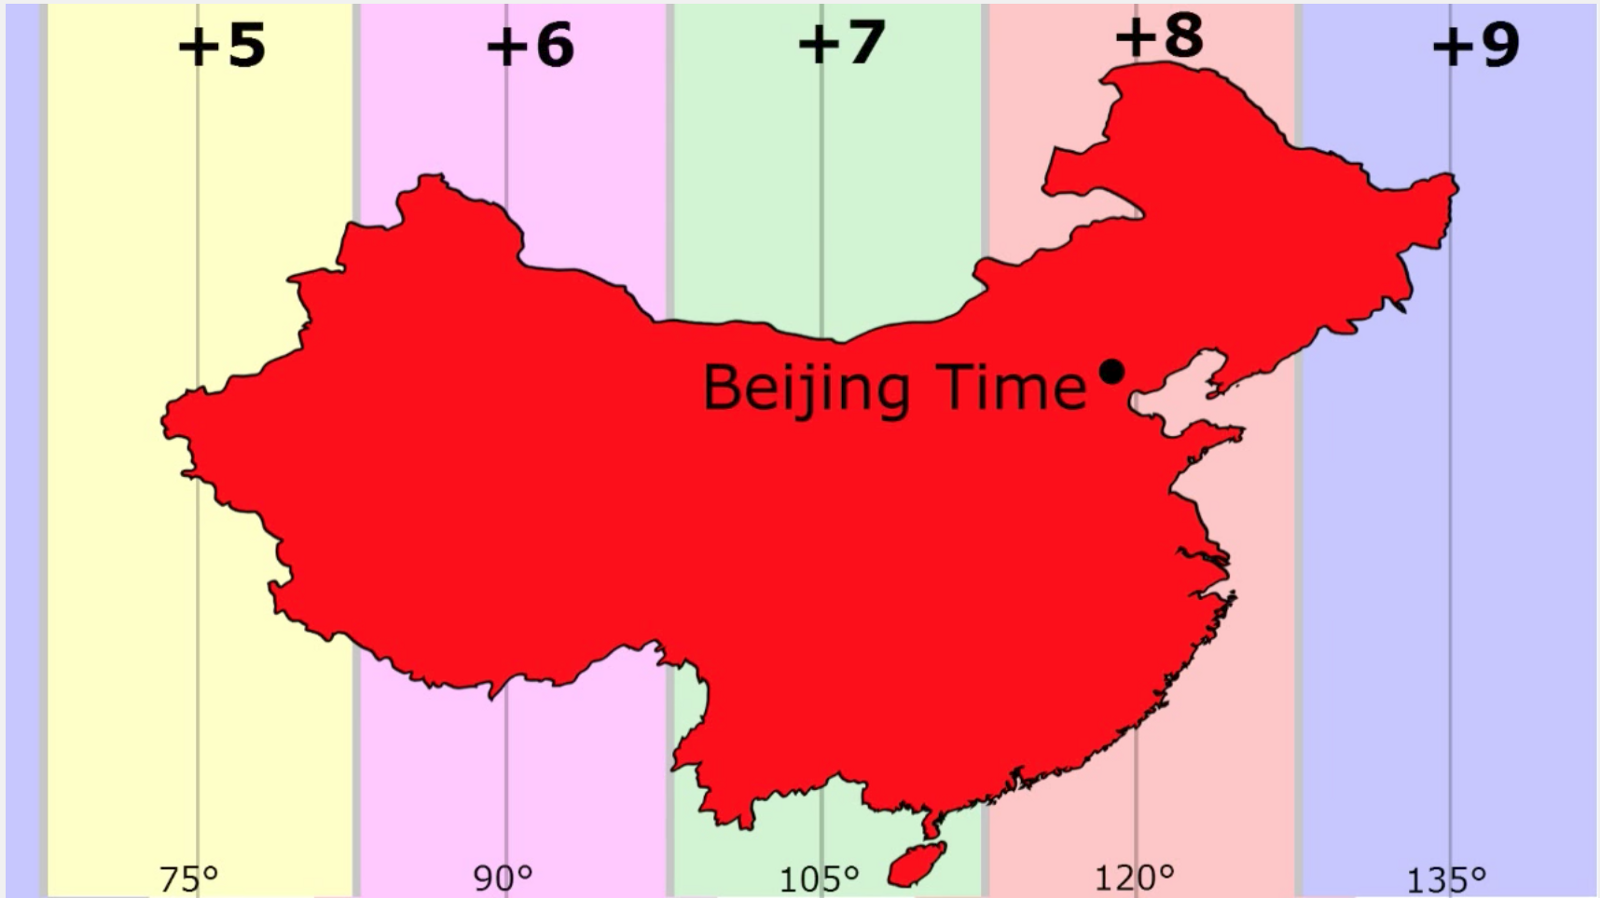 China Time Zones